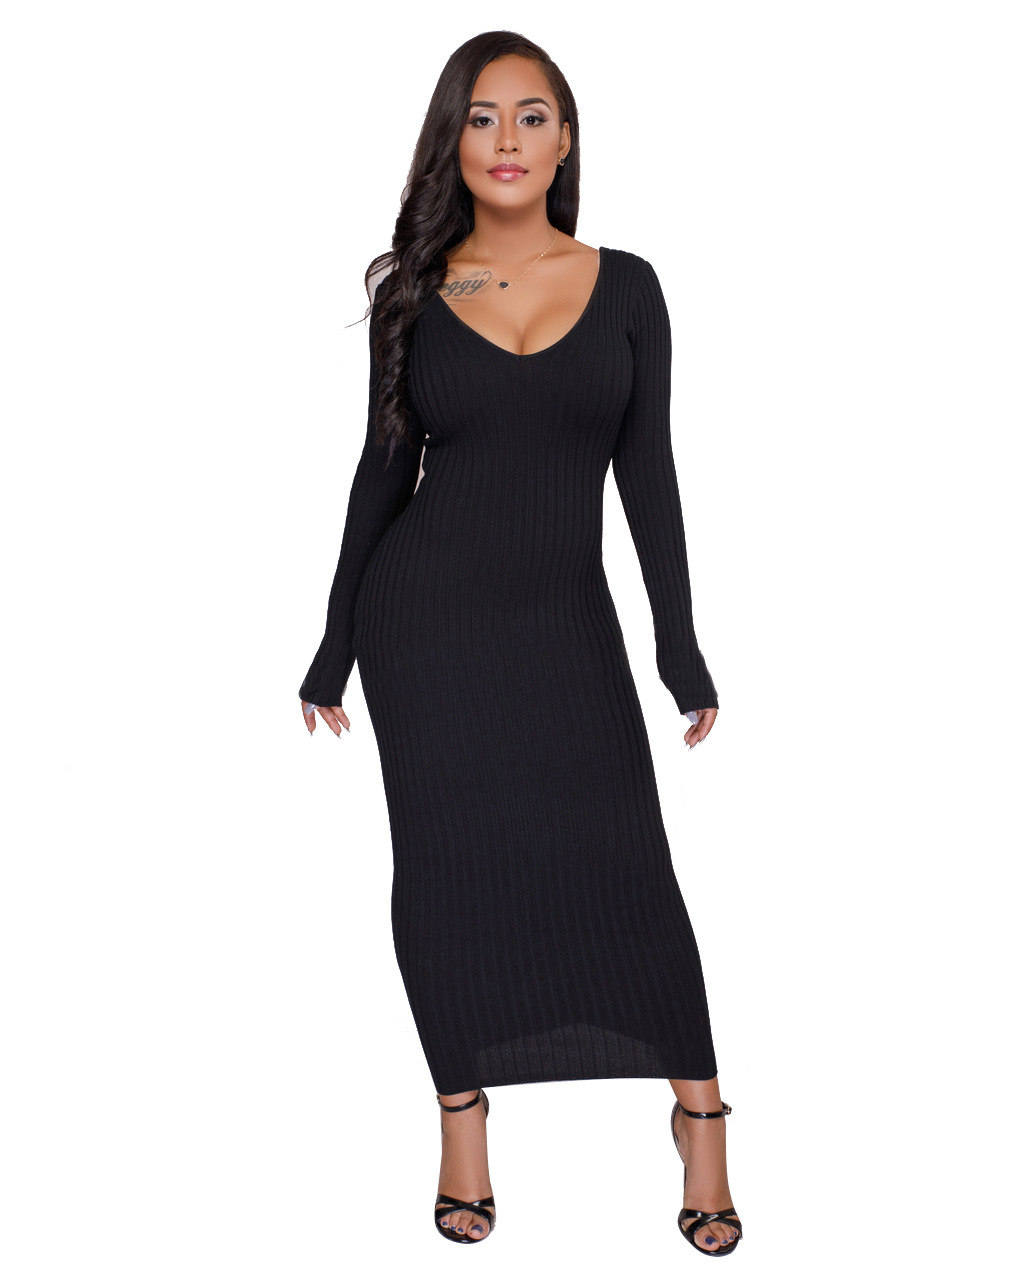 NEW Plus Size Sweater Maxi Dresses Long Knitted Sweater Dress Women Cotton Bodycon Dresses Pullover Female Autumn Winter Dress plus size double pockets knitted dress